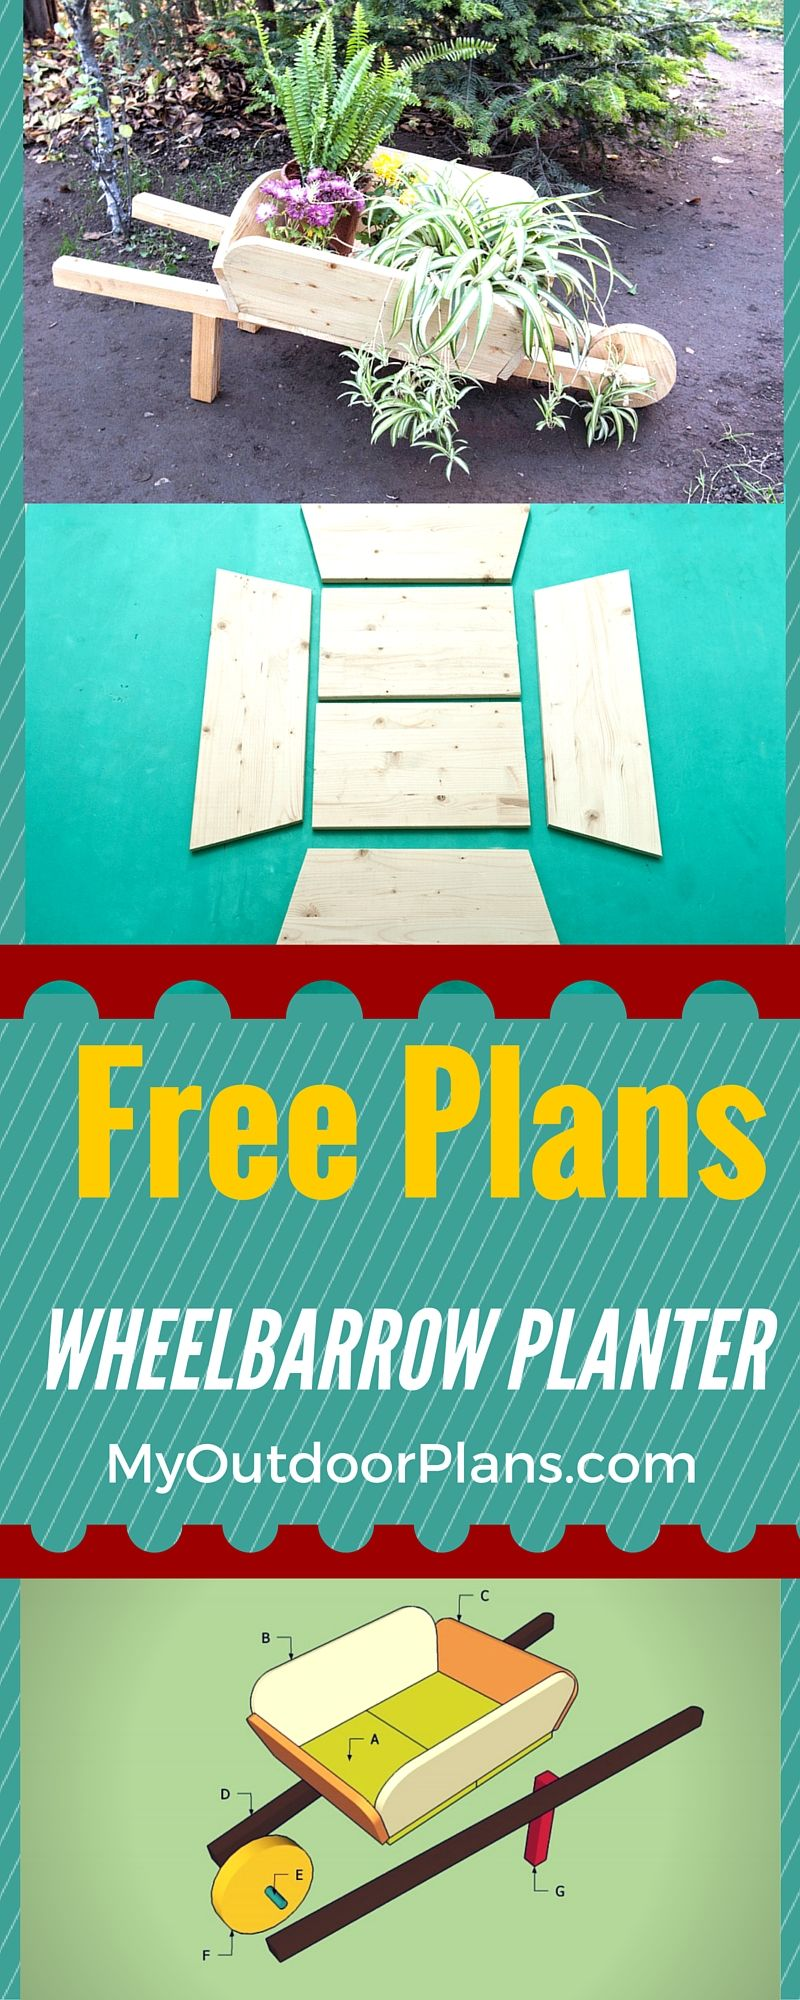 how to build a wheelbarrow planter easy to follow plans for building a wood wheelbarrow planter for your garden in just a few hours howtospecialist com  [ 800 x 2000 Pixel ]